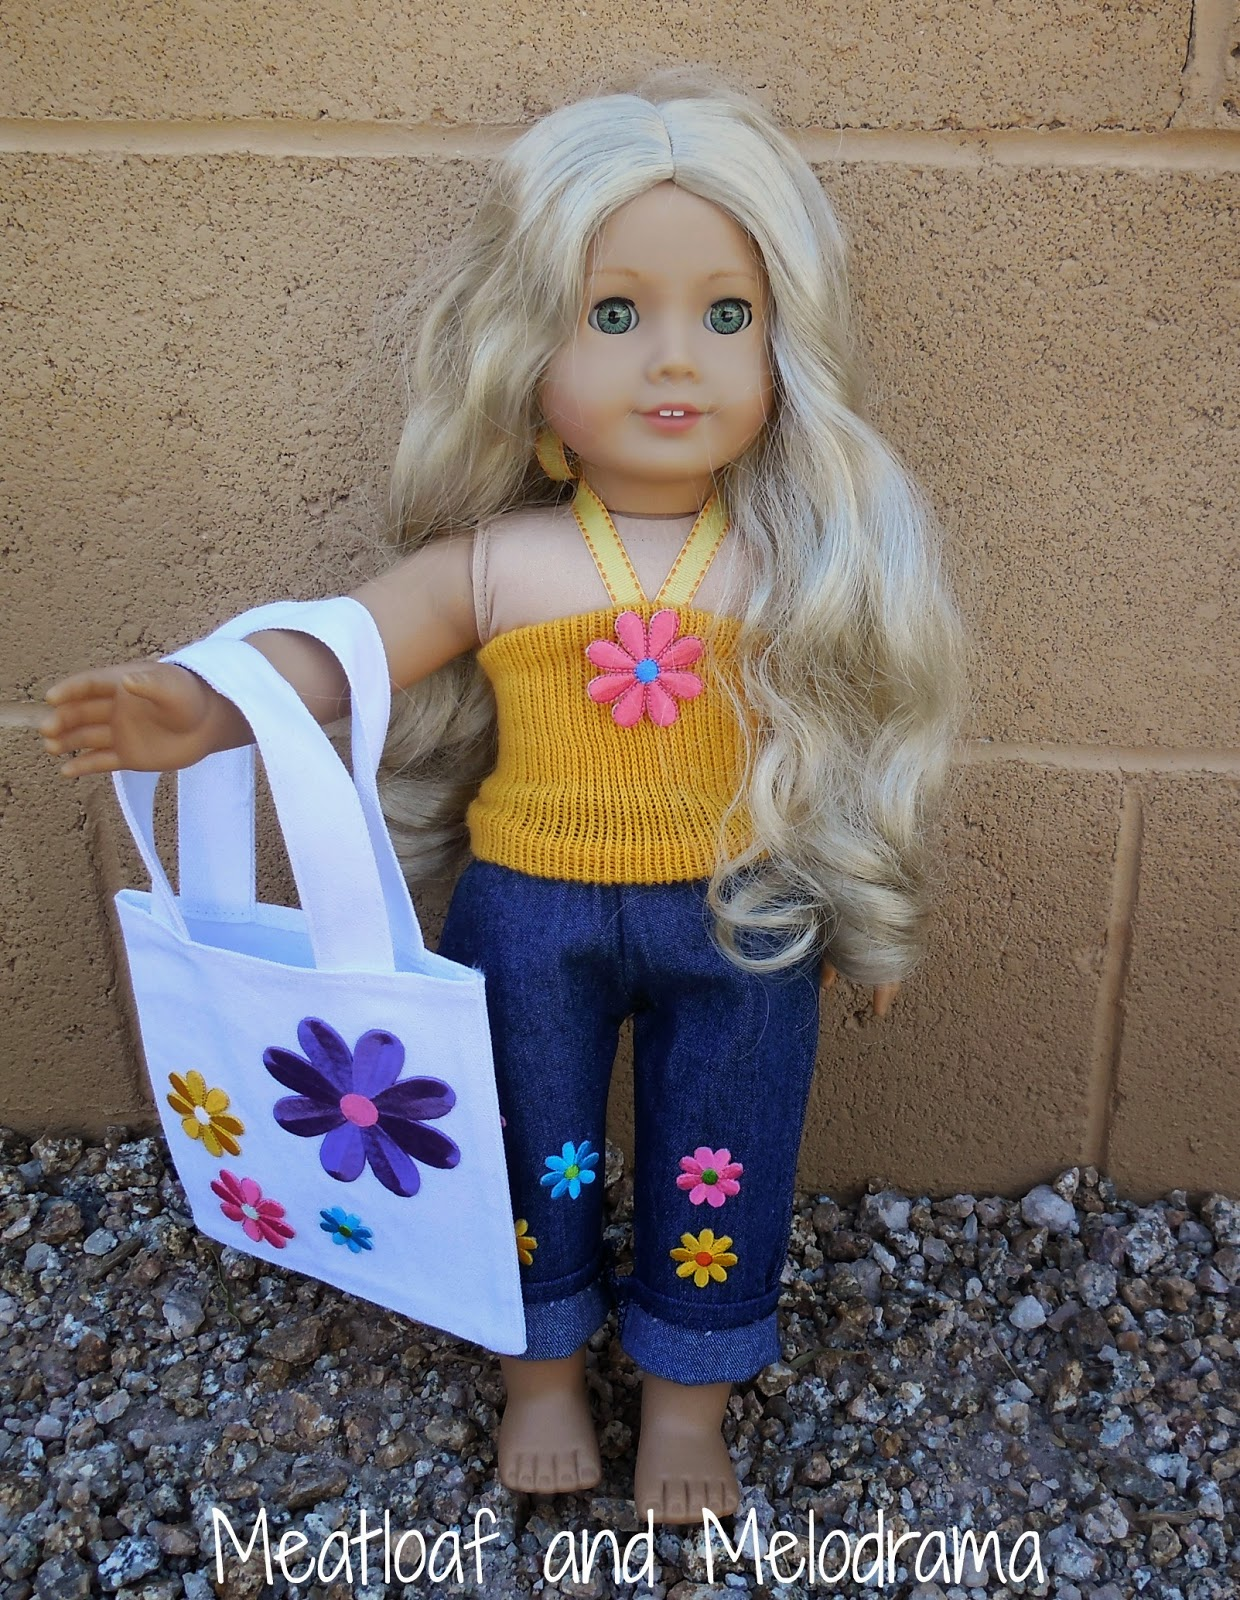 american girl doll with flower tote bag and matching summer outfit